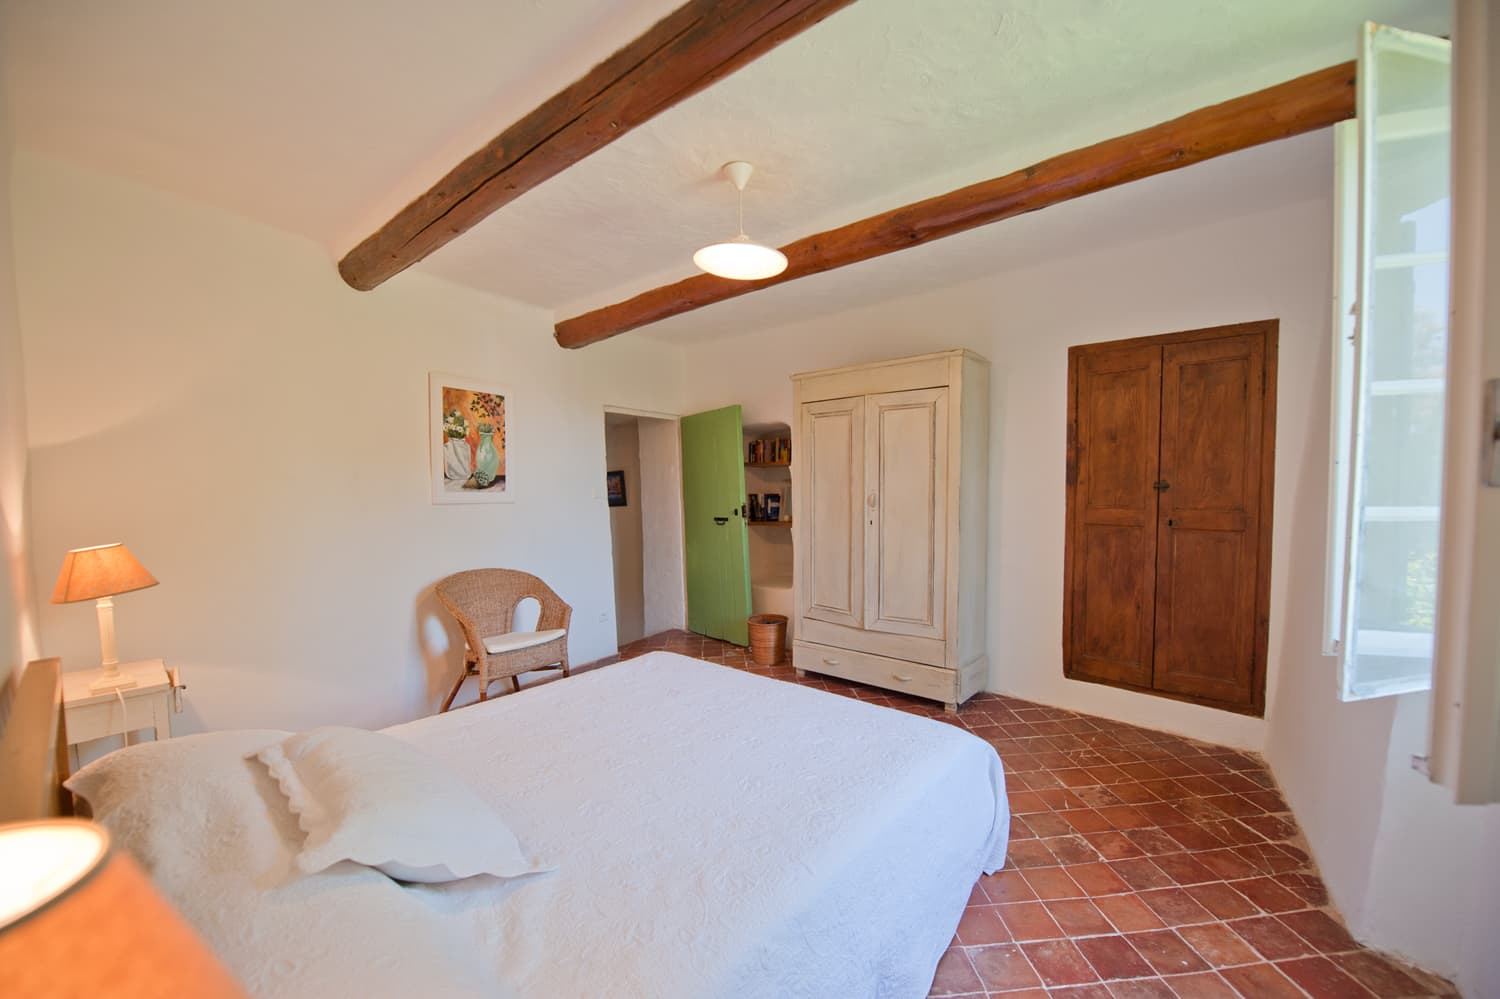 Bedroom in Provence self-catering home